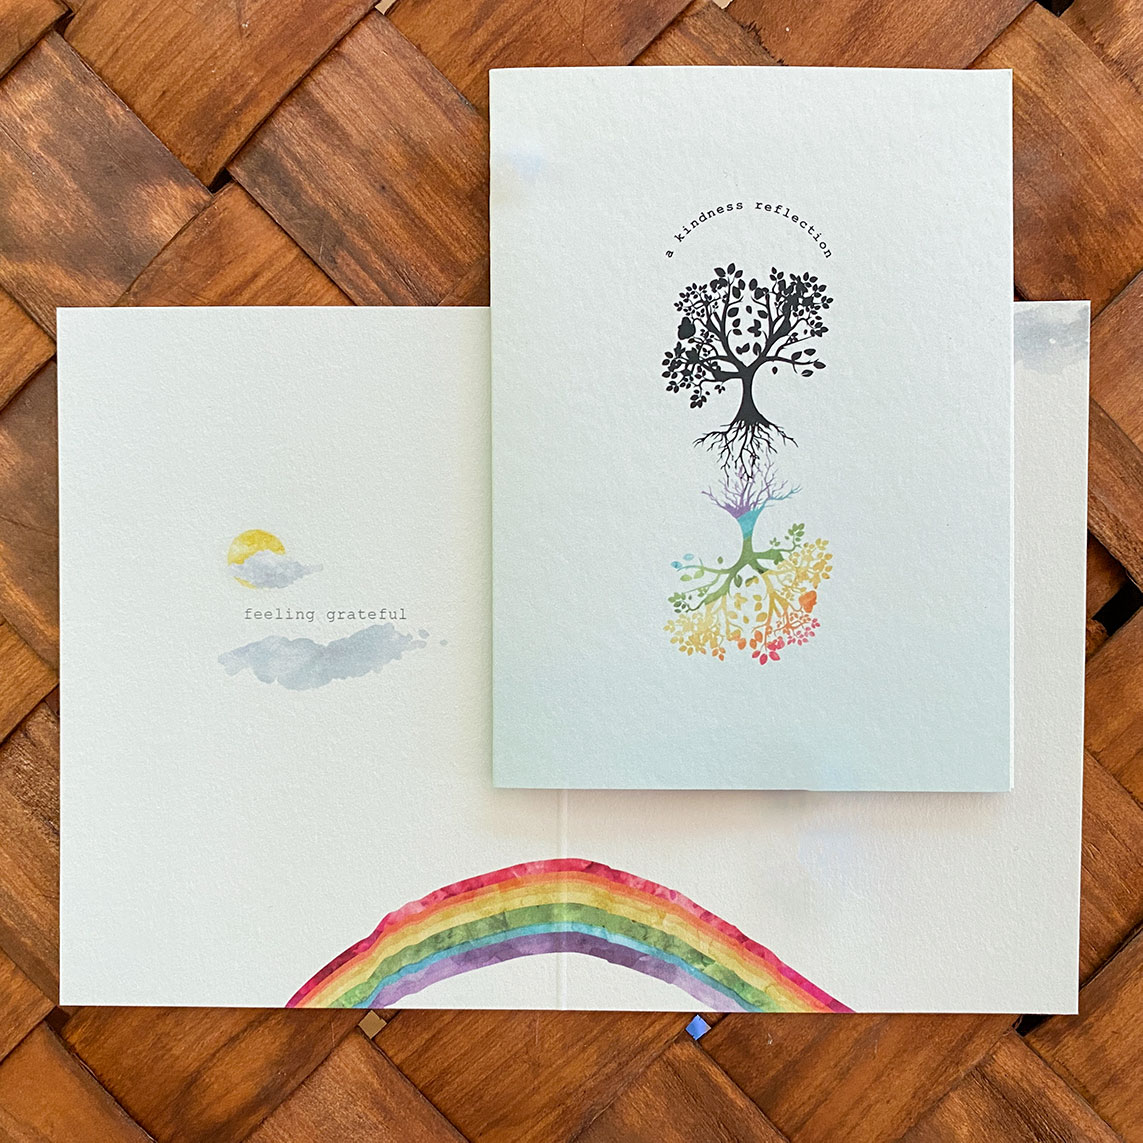 """A pastel blue gratitude card with a tree reflected in rainbow colors and quite """"a kindness reflection"""""""